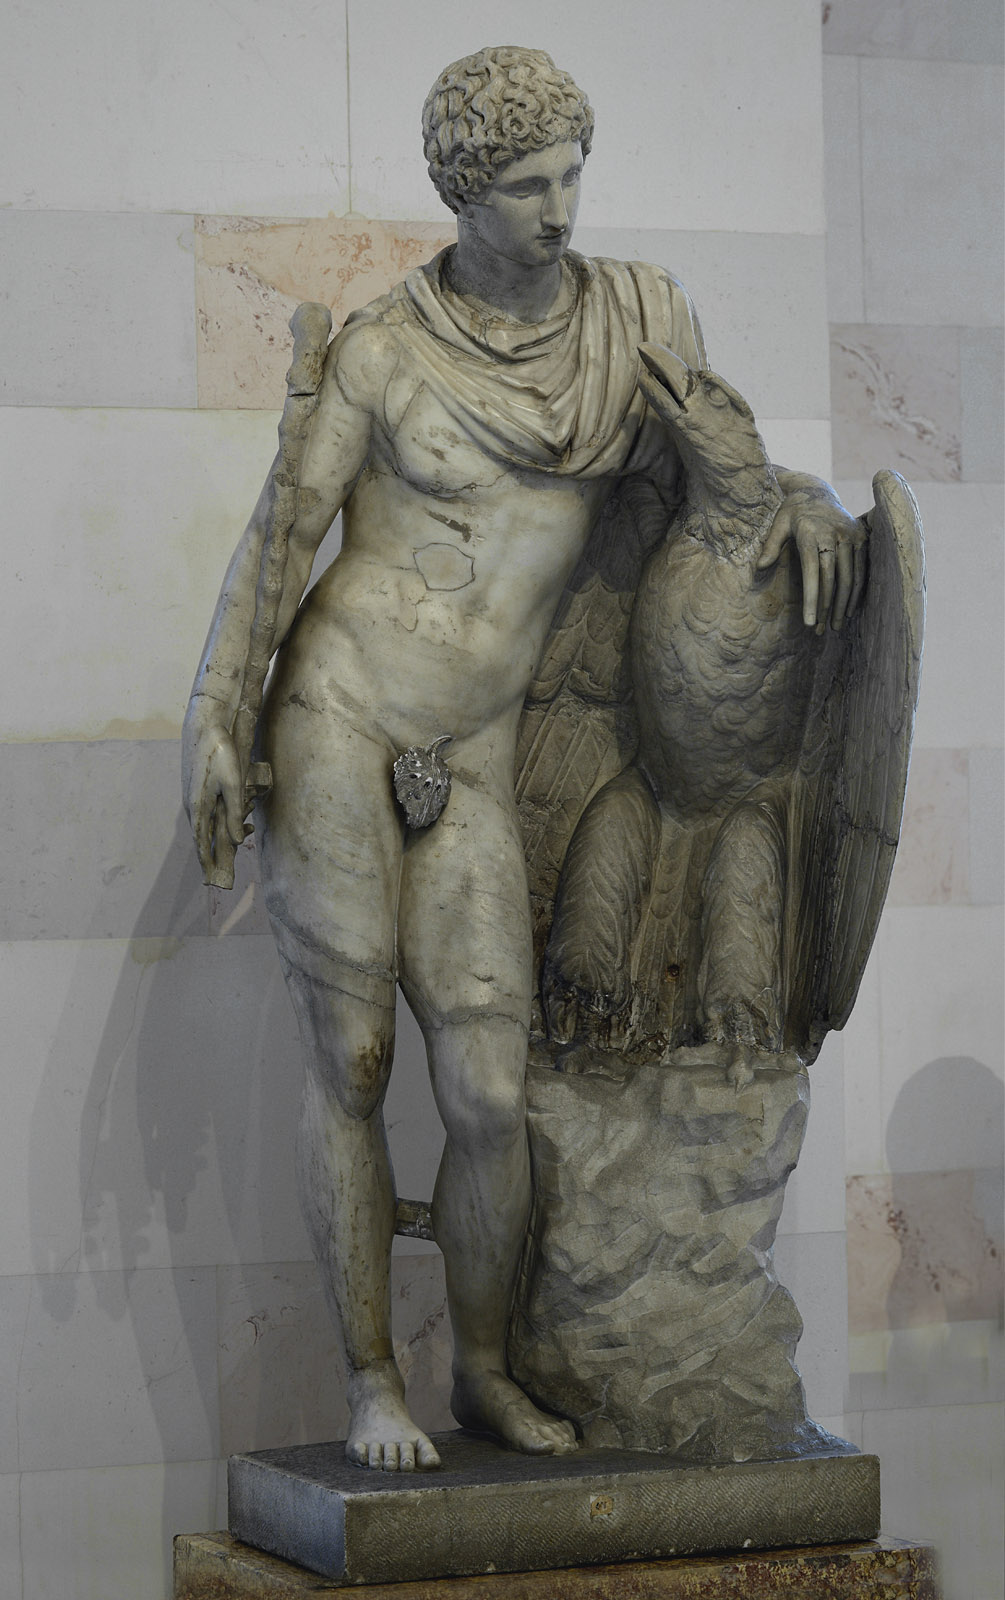 Ganymede and the Eagle. Marble. Roman copy of the 2nd cent. CE after a Greek original from the Praxiteles school, 3rd century BCE. H. 160 cm. Inv. No. A 950. Saint Petersburg, The State Hermitage Museum